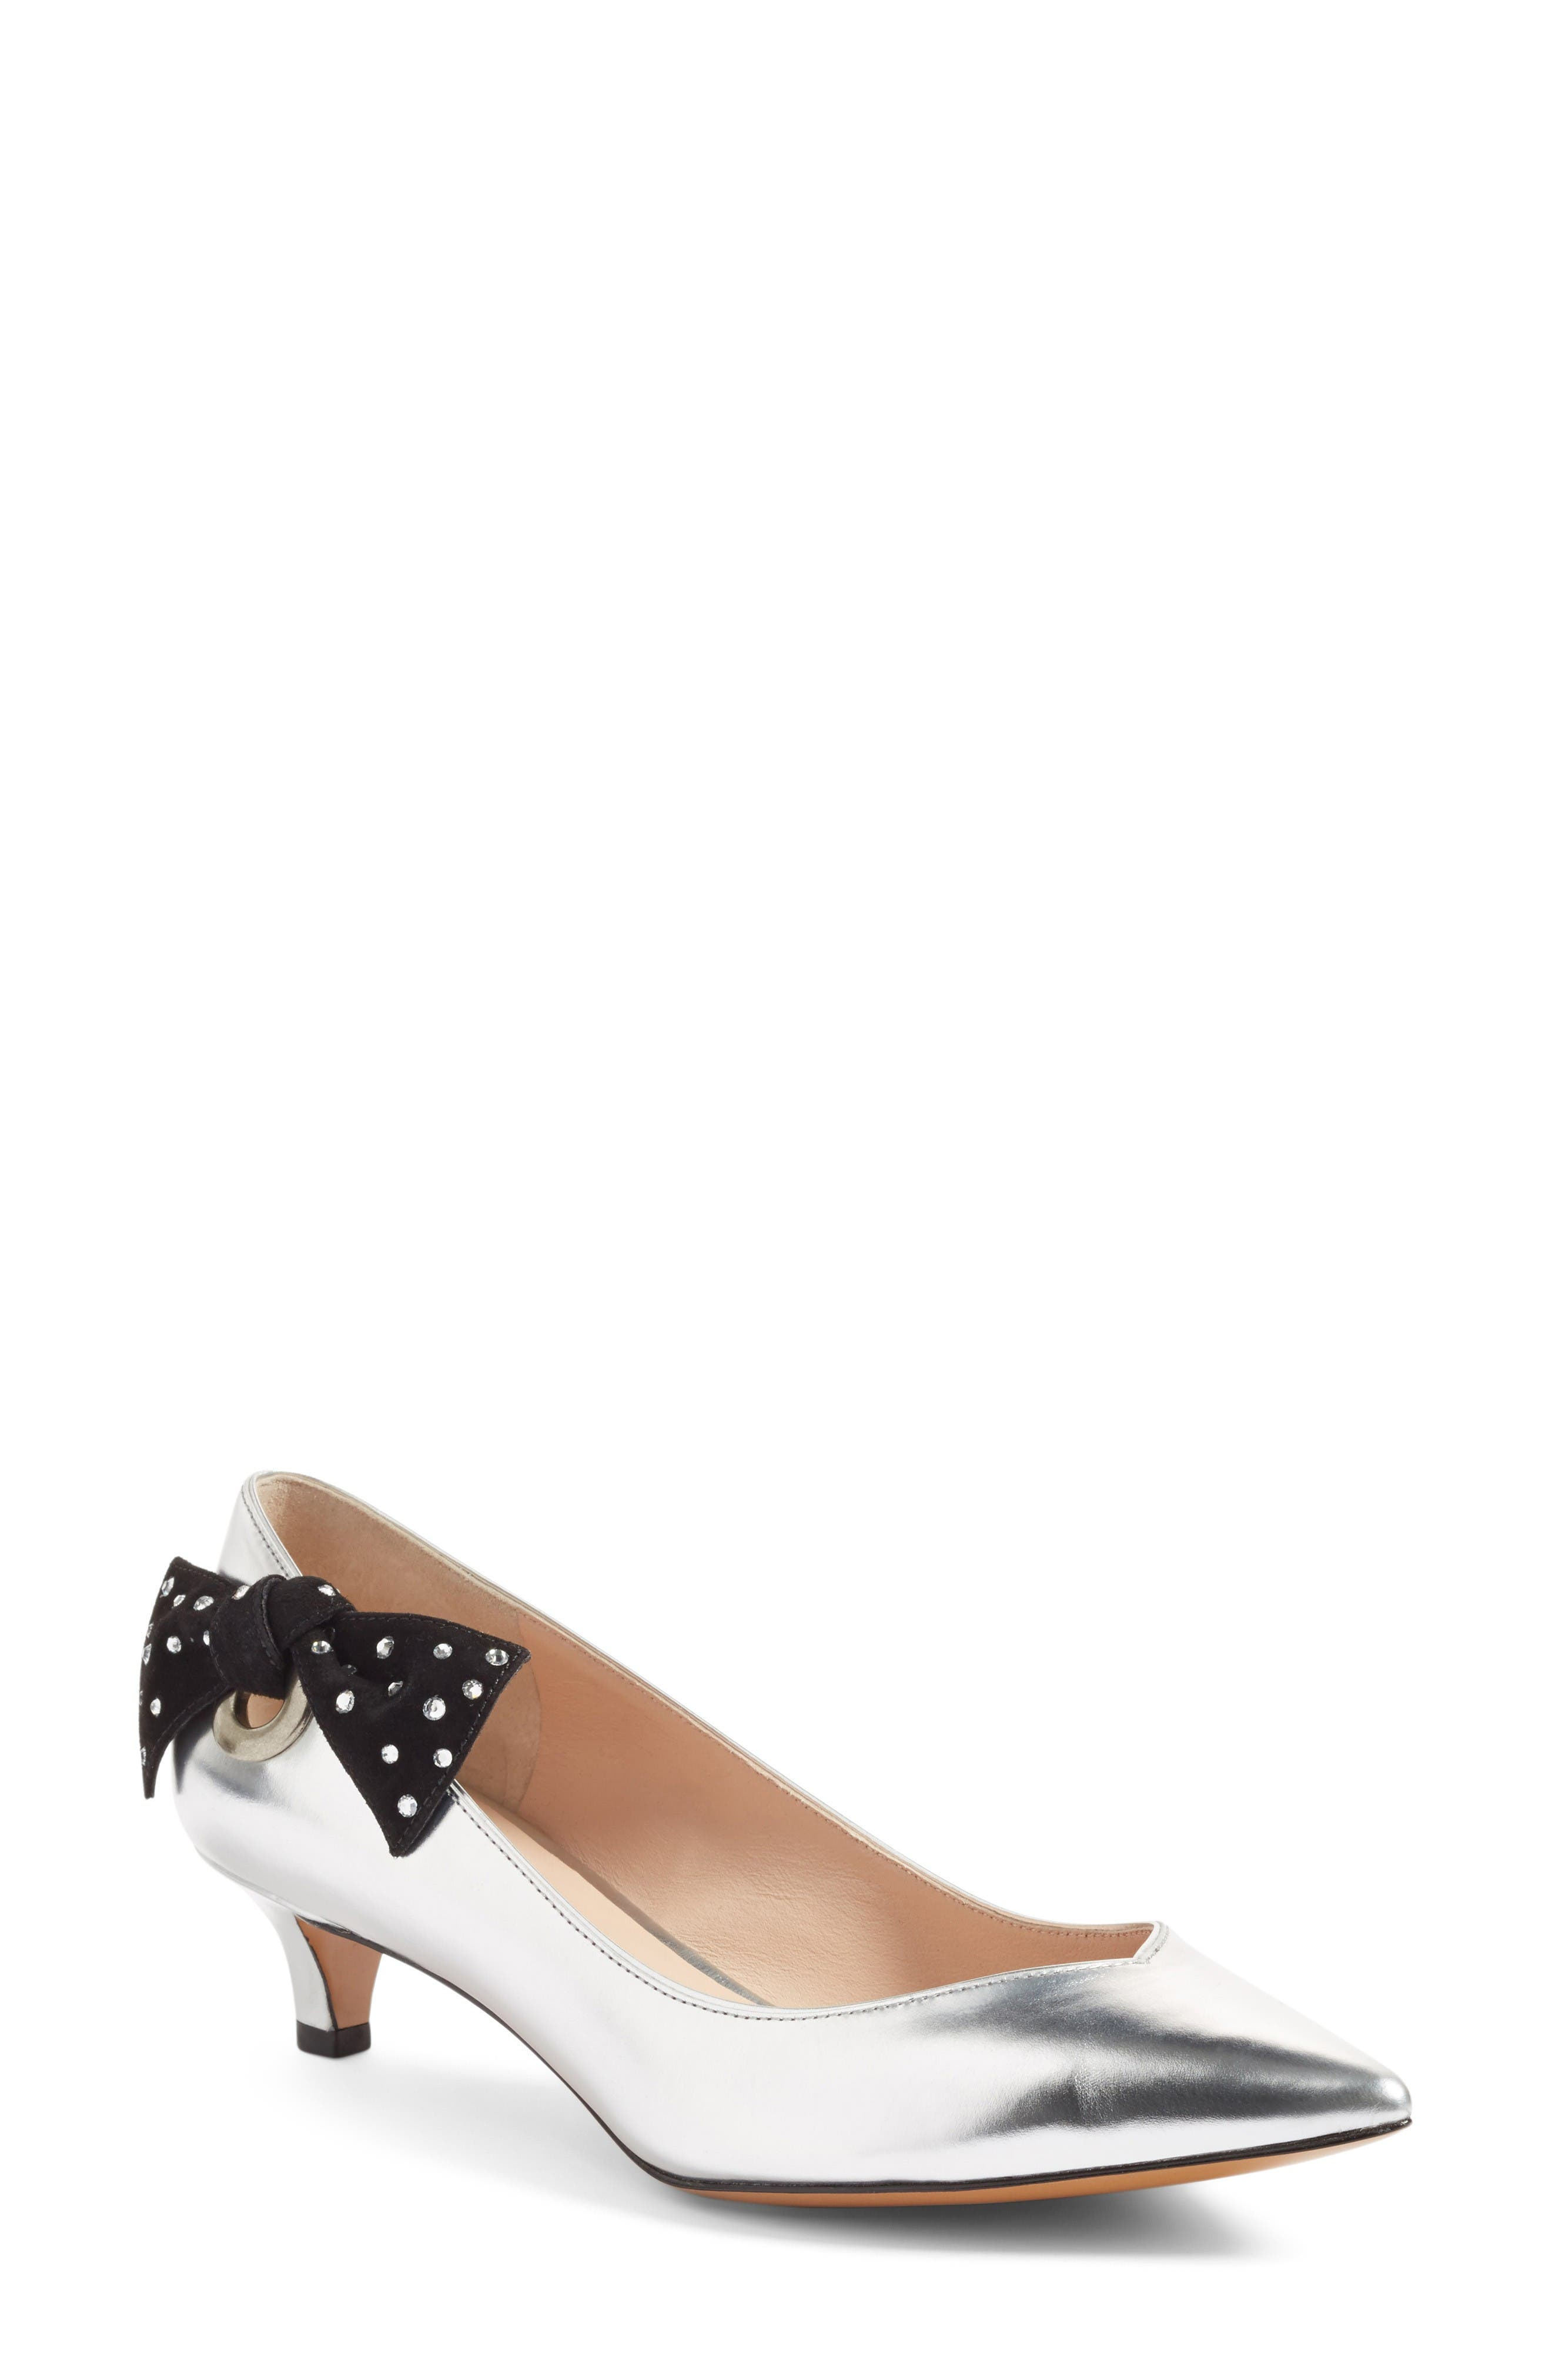 Alternate Image 1 Selected - MARC JACOBS Ally Pump (Women)